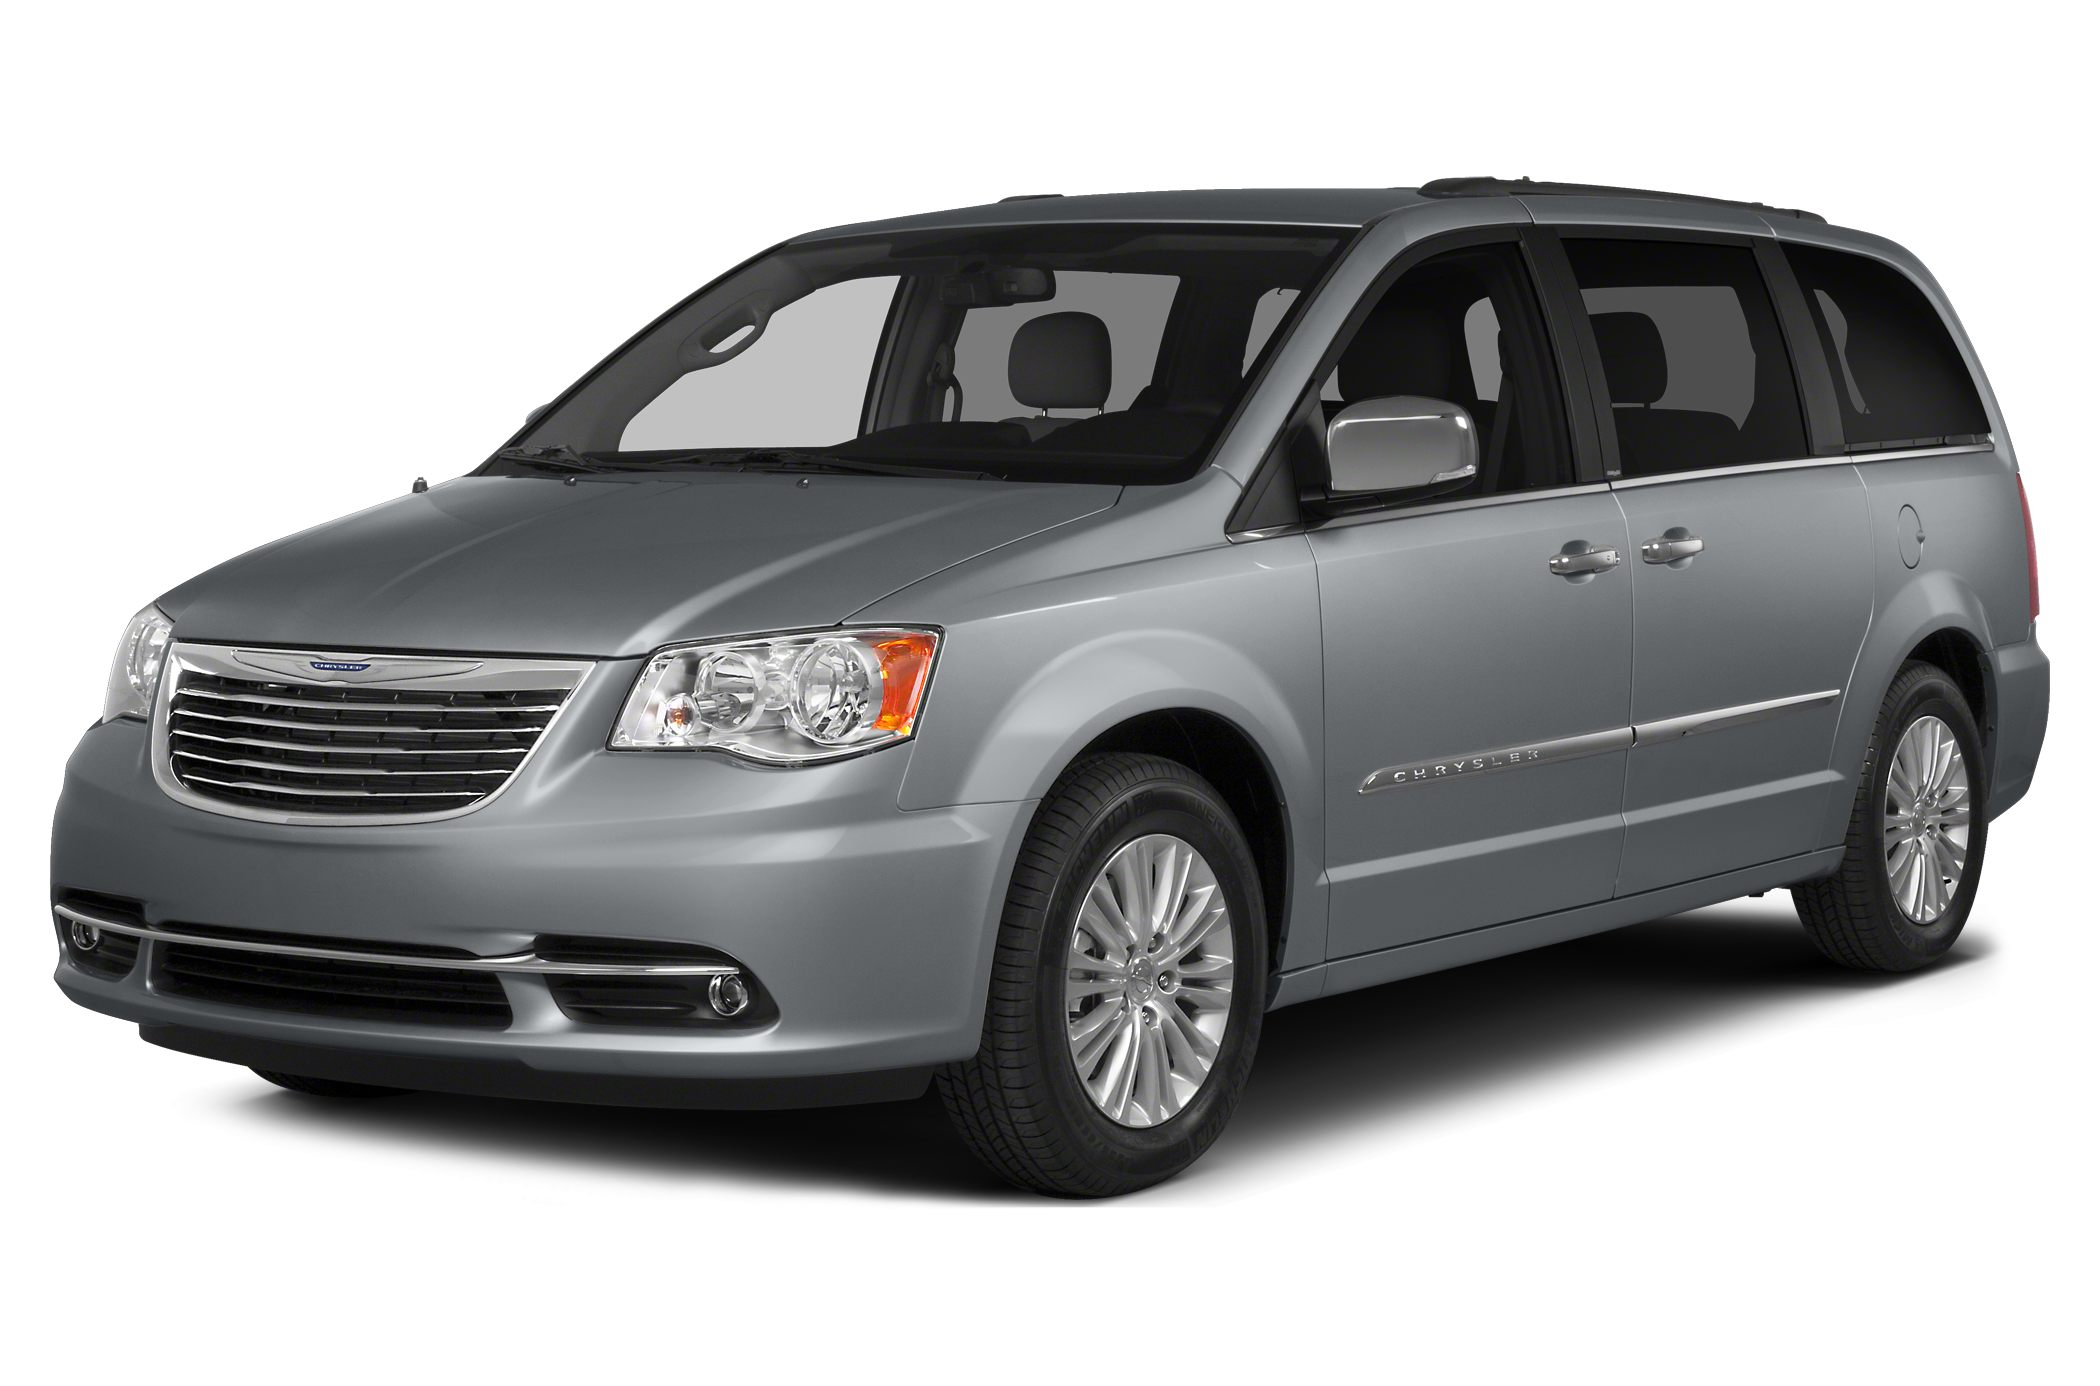 2015 Chrysler Town & Country Touring Minivan for sale in Anderson for $28,600 with 2 miles.